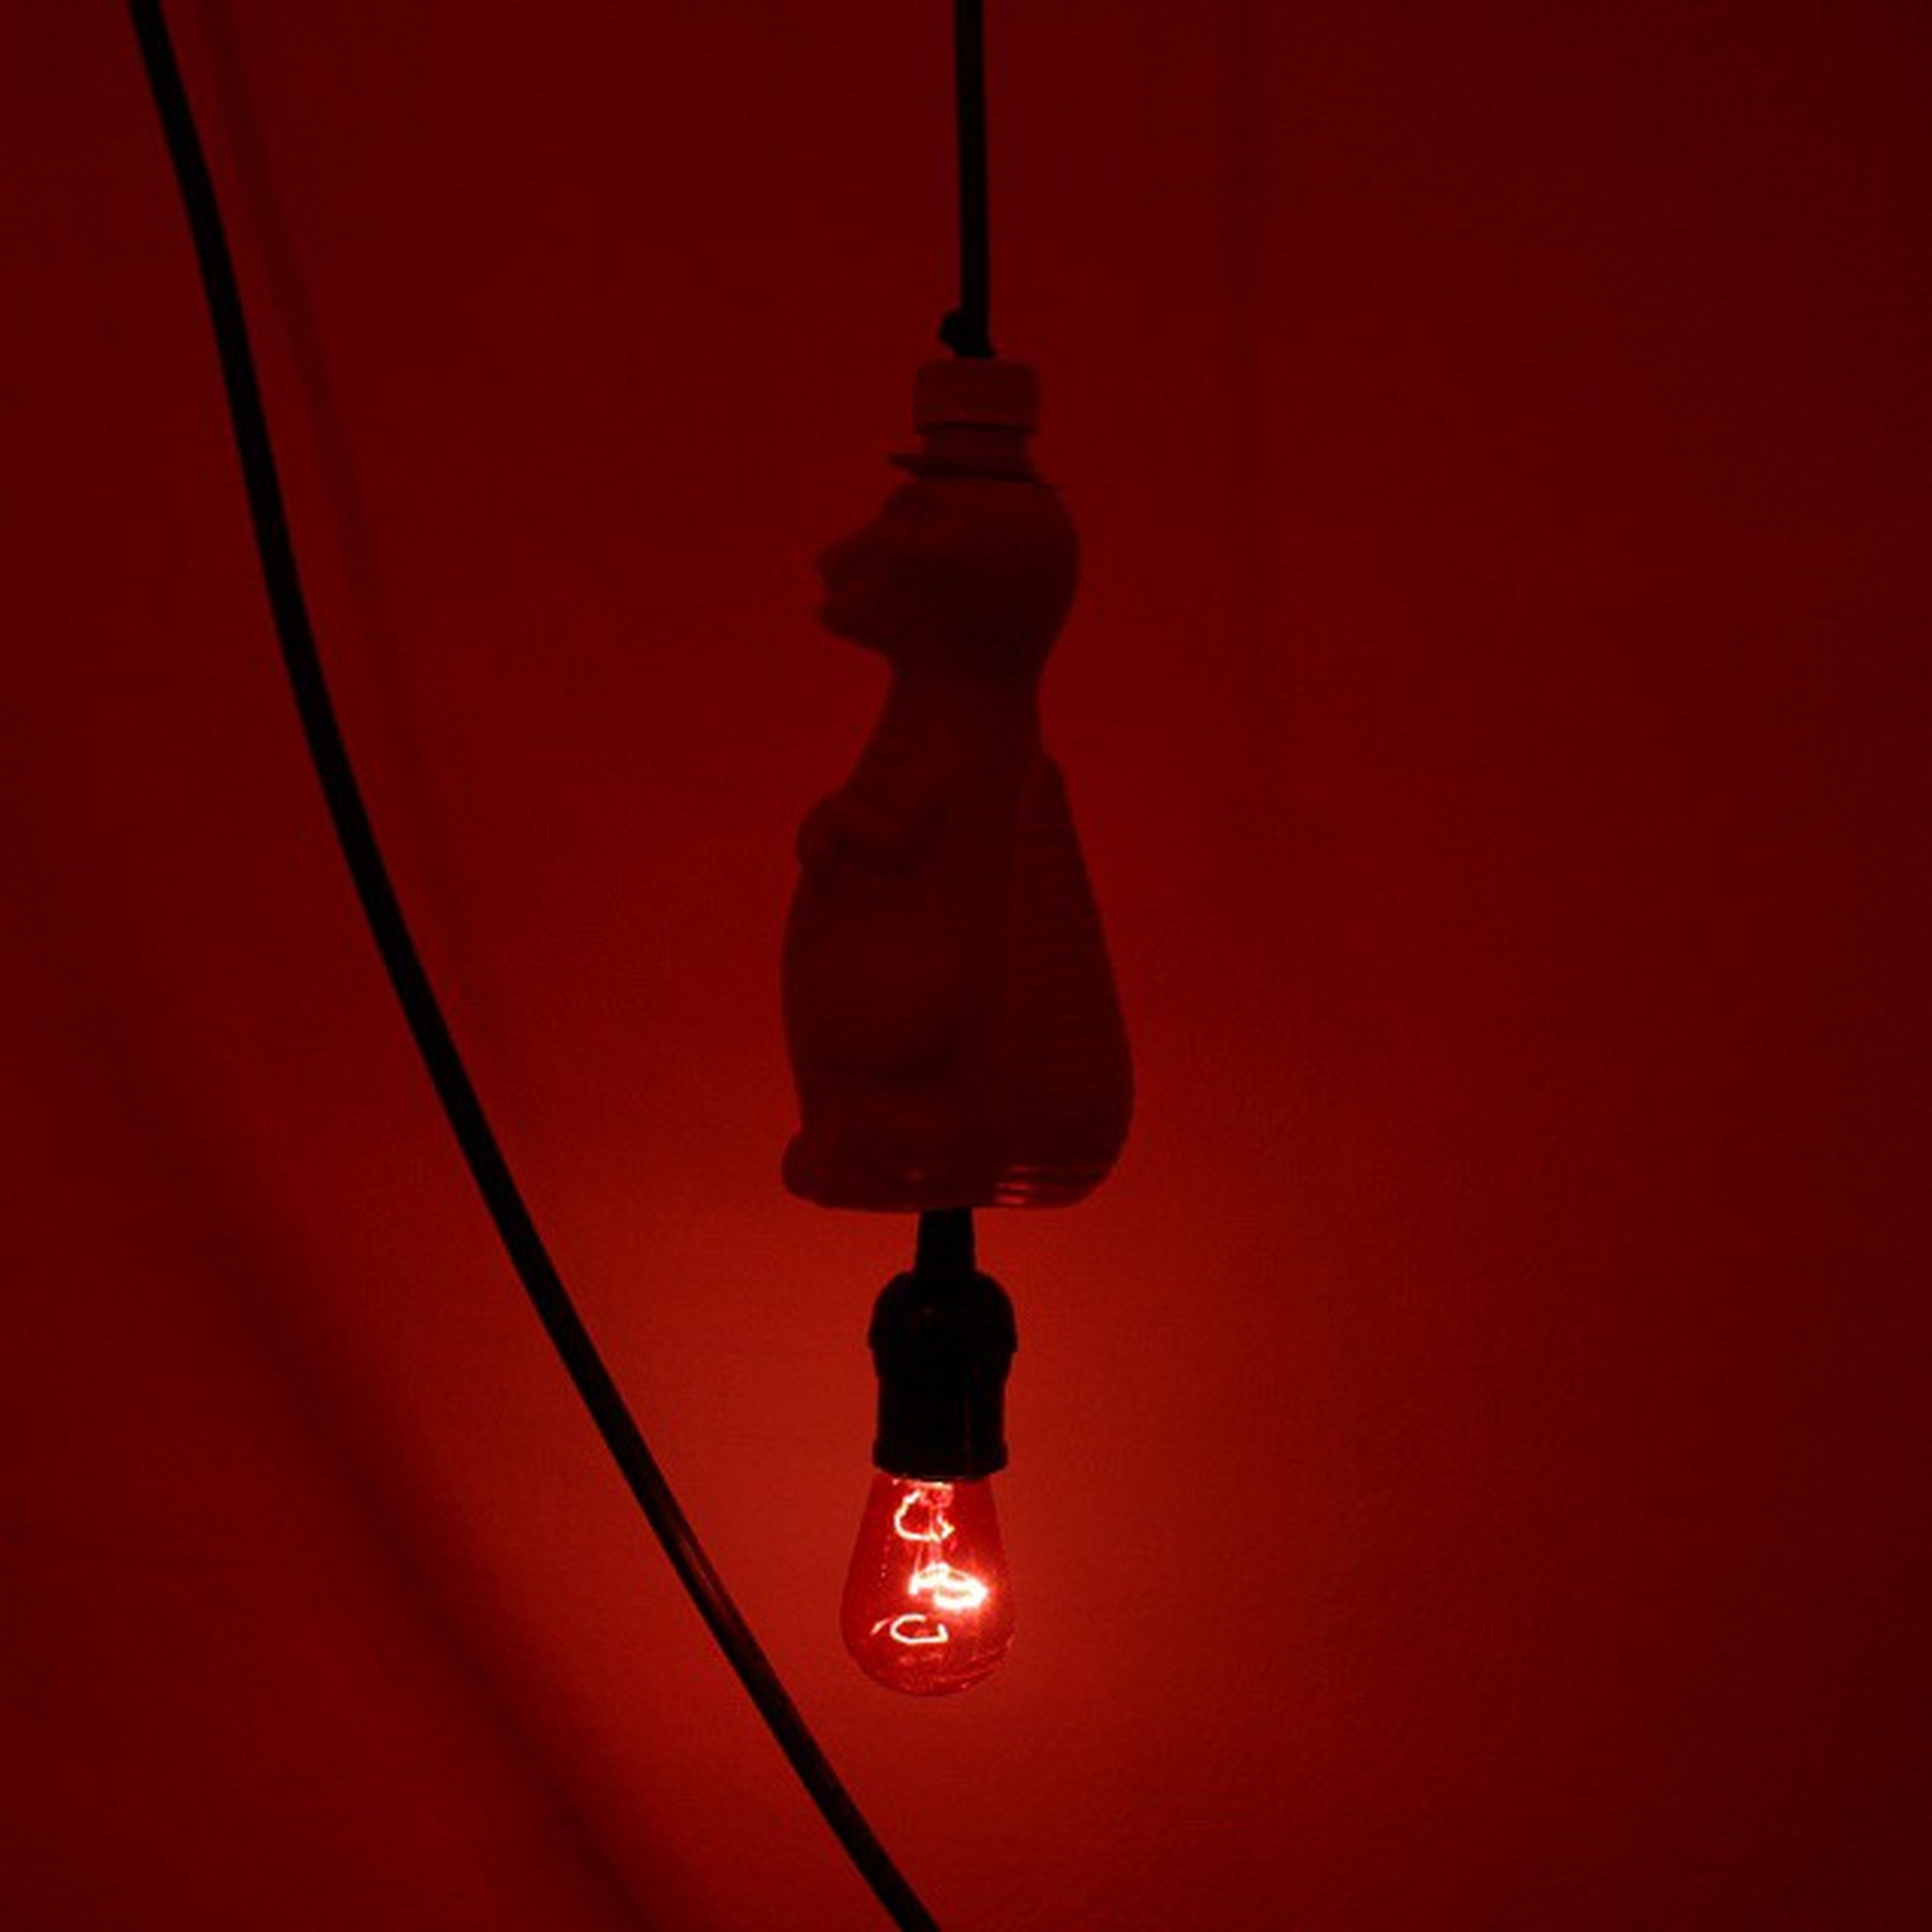 red, indoors, lighting equipment, low angle view, illuminated, hanging, copy space, lantern, orange color, no people, close-up, electric light, electricity, ceiling, travel, part of, technology, wall - building feature, pattern, single object